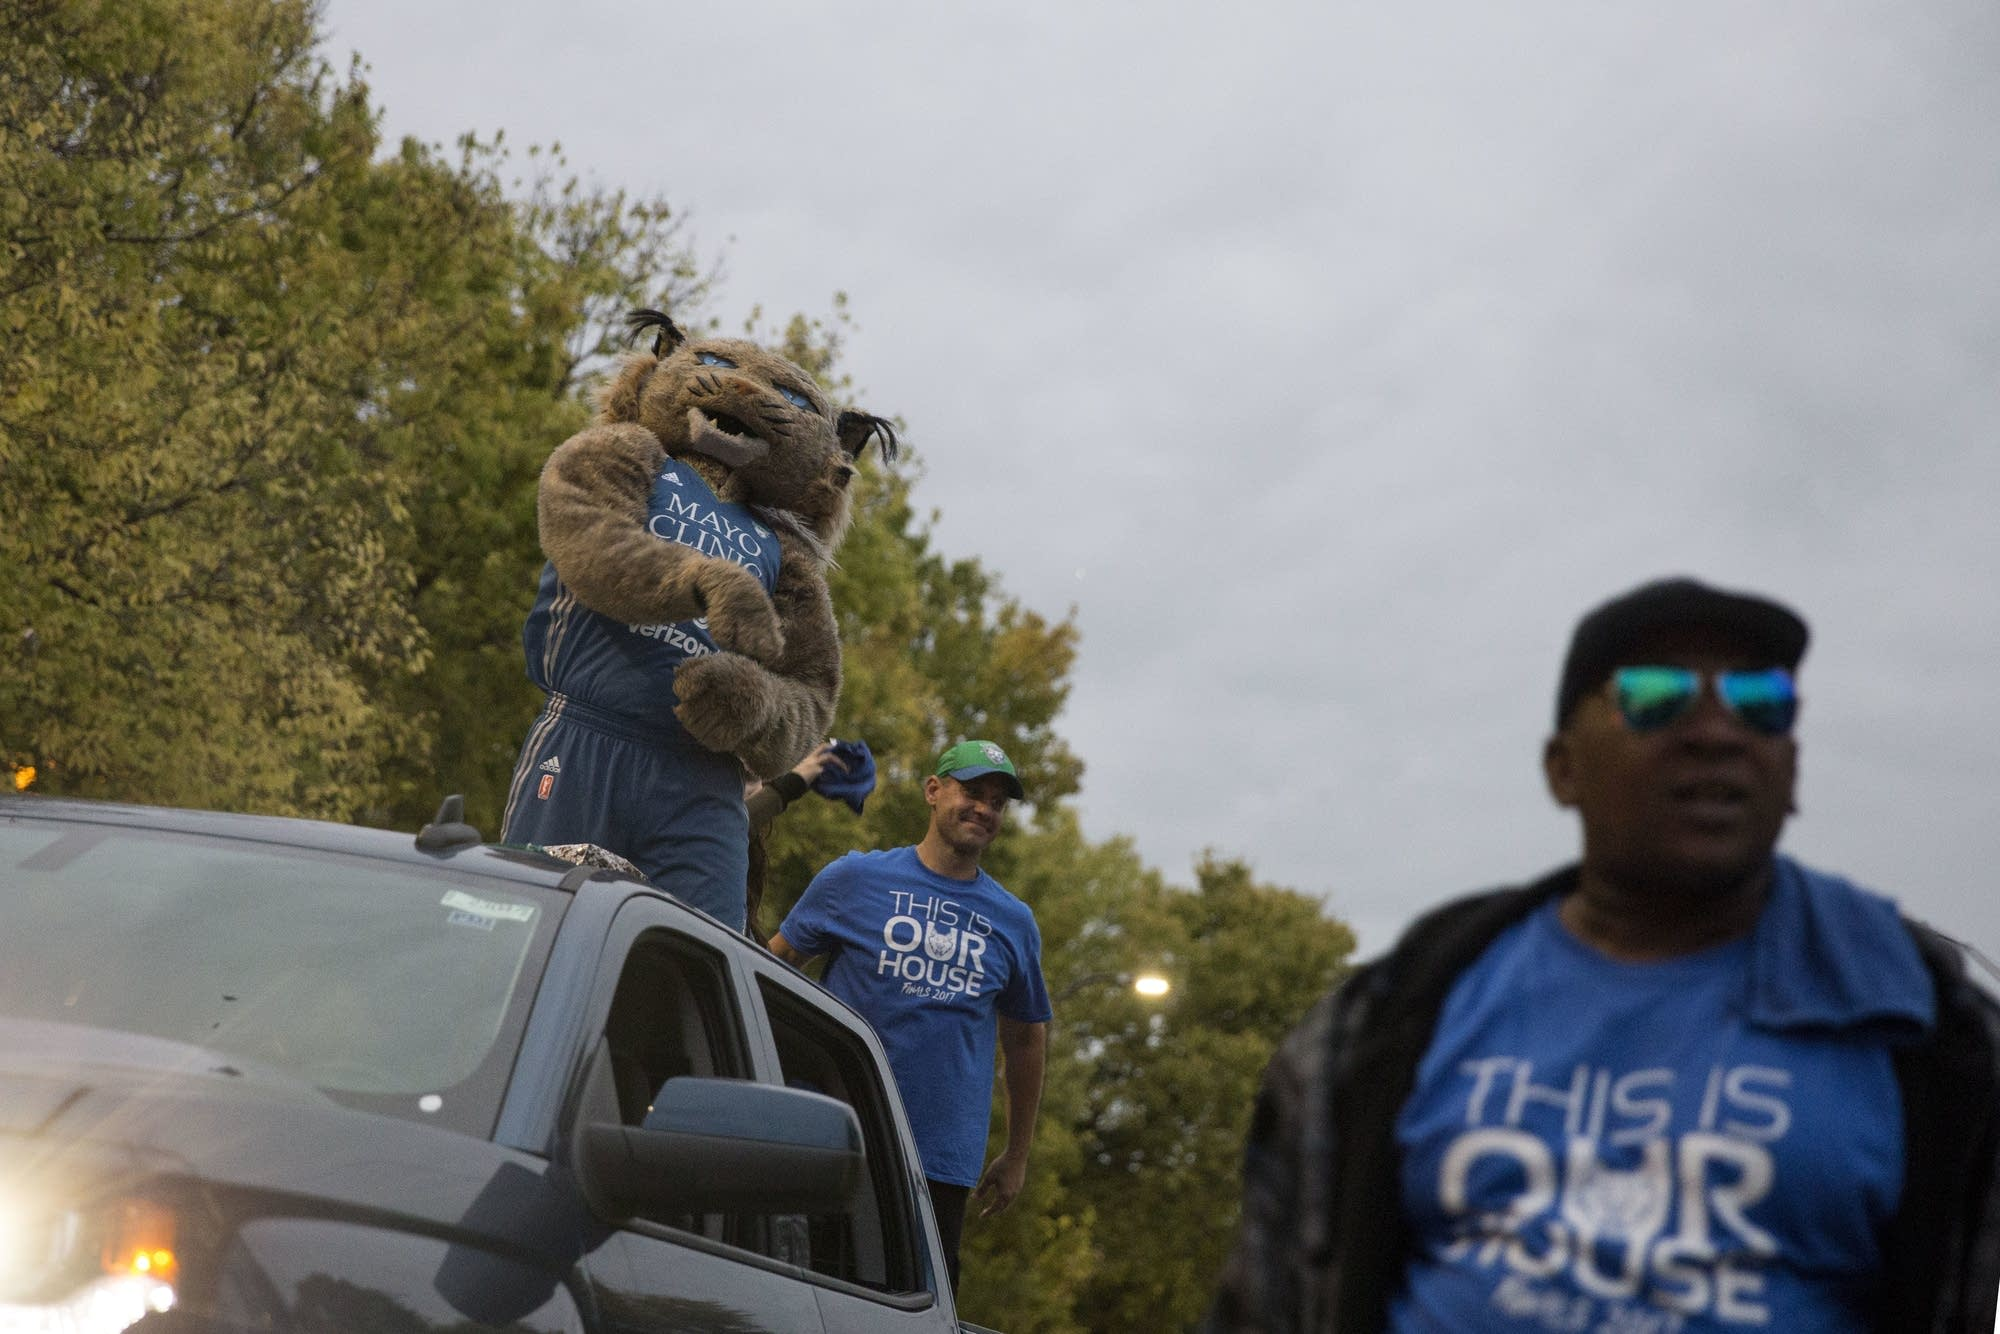 The Minnesota Lynx mascot throws candy to parade-goers.